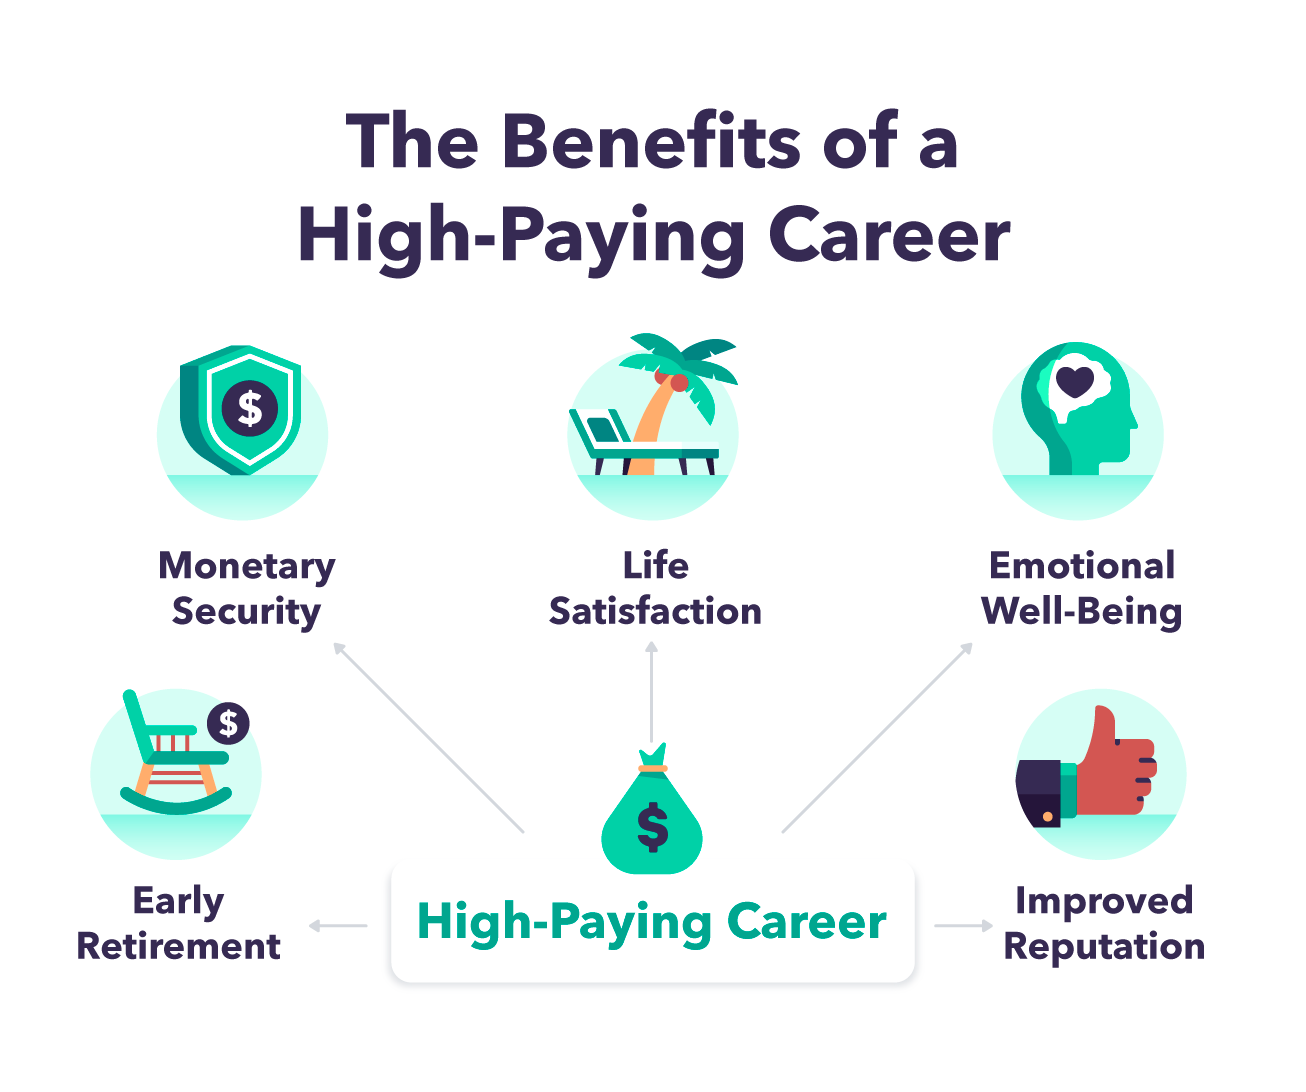 the benefits of a high-paying career